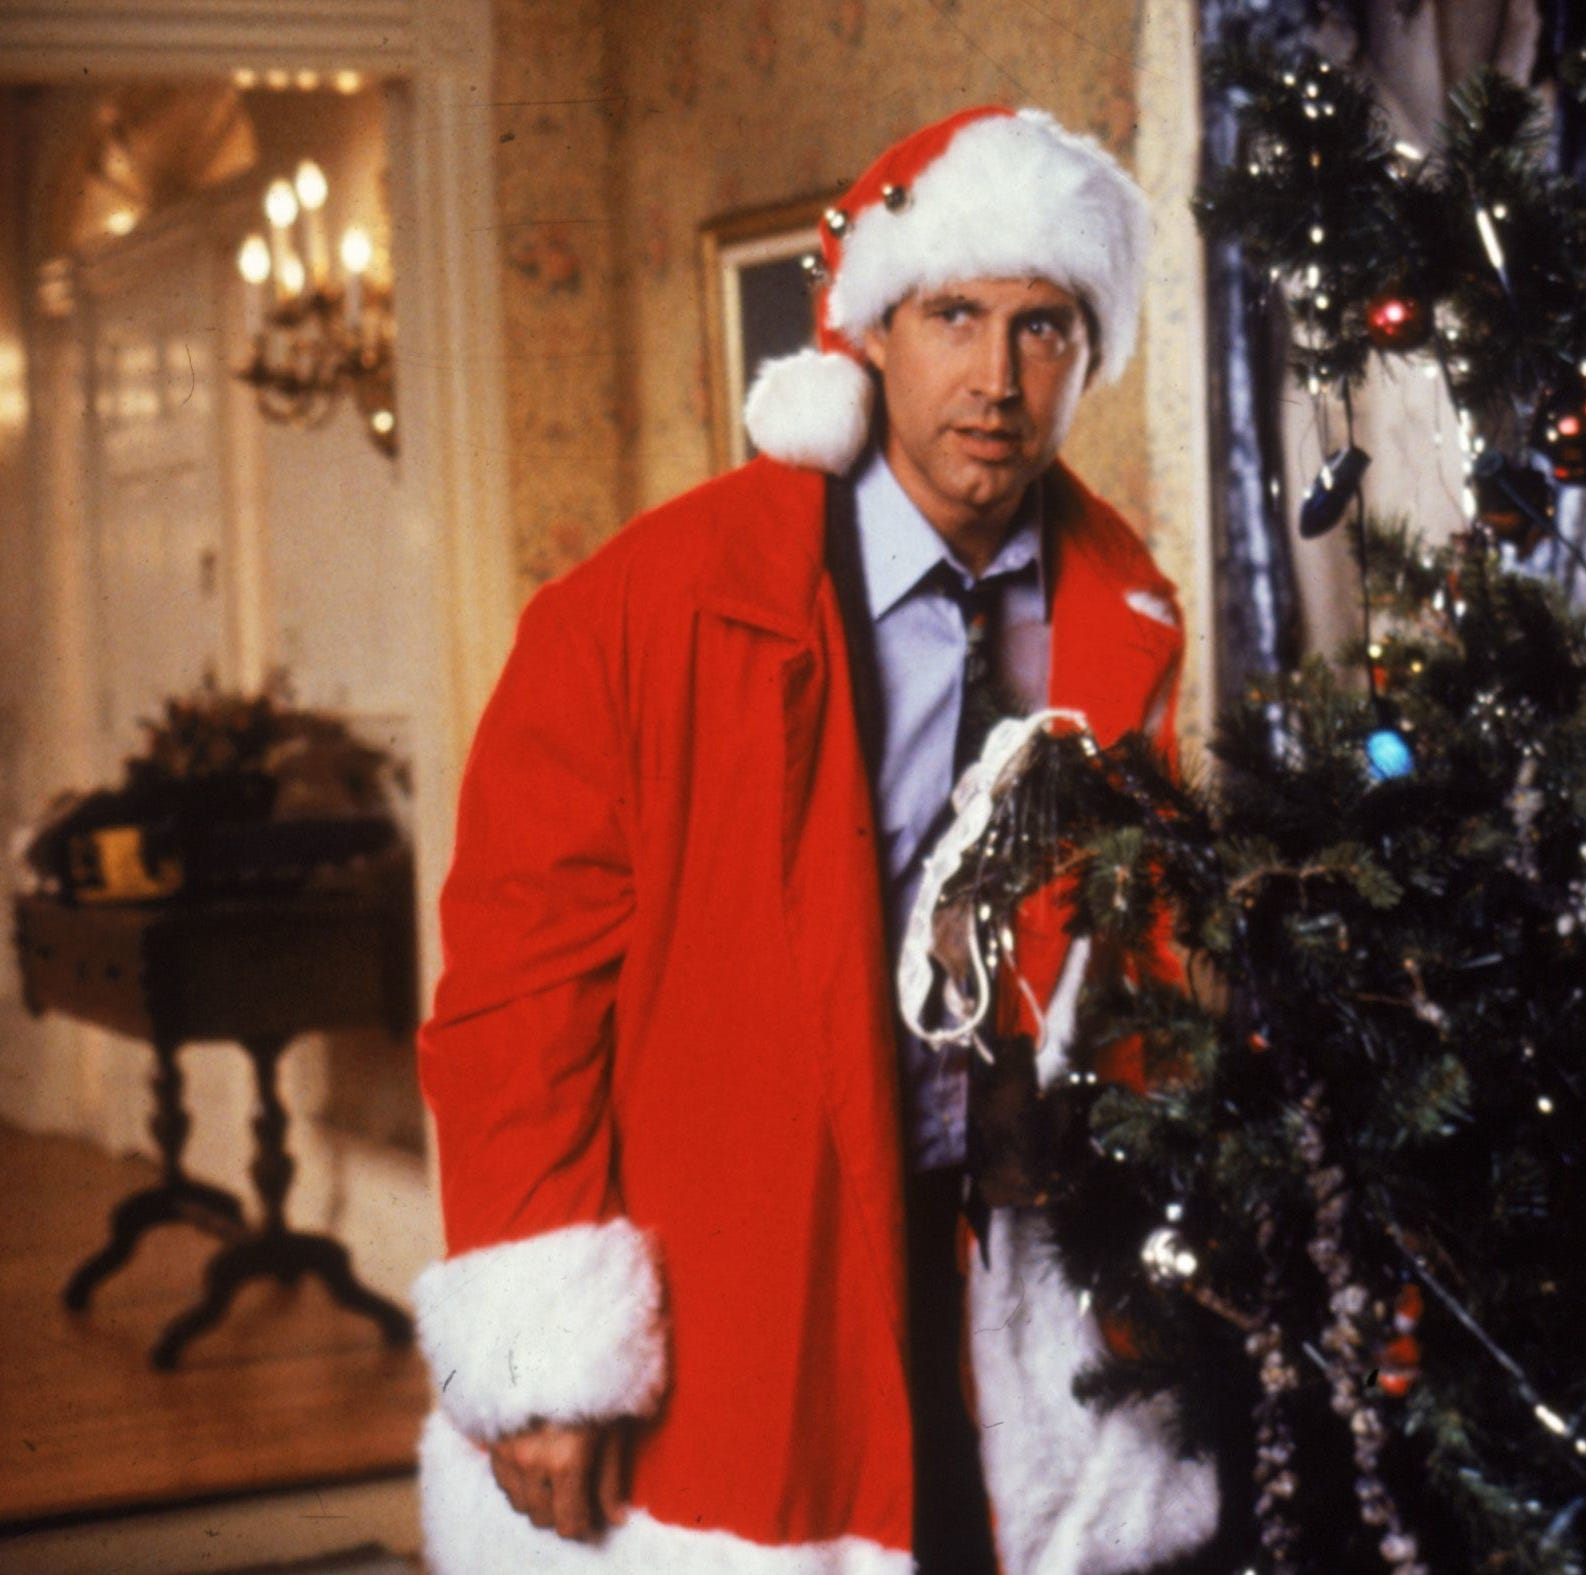 From 'It's A Wonderful Life' to 'Die Hard': Journal staff picks favorite Christmas films